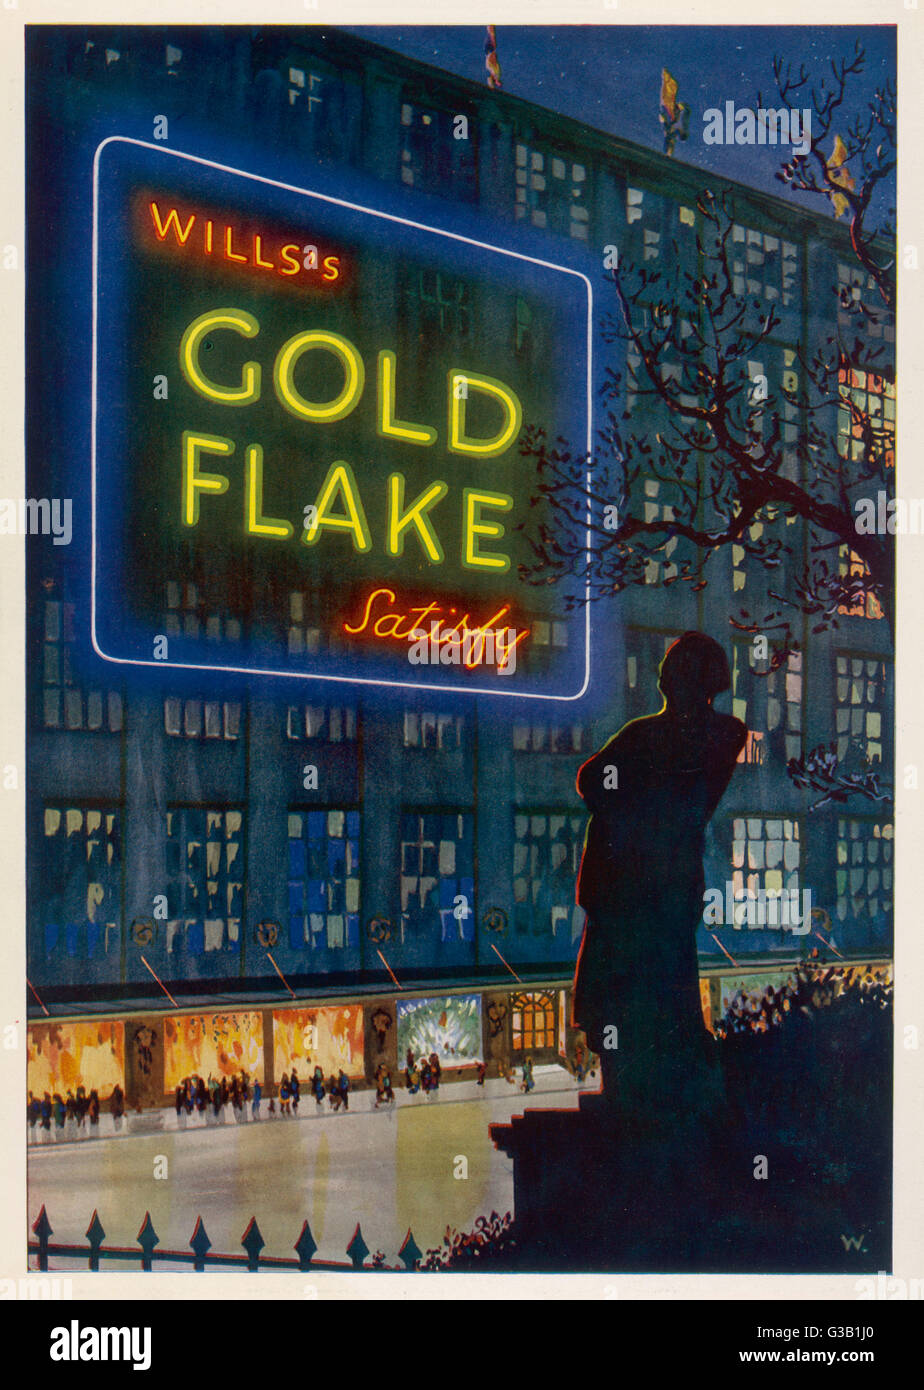 Wills's Gold Flake  cigarettes satisfy        Date: 1930 - Stock Image